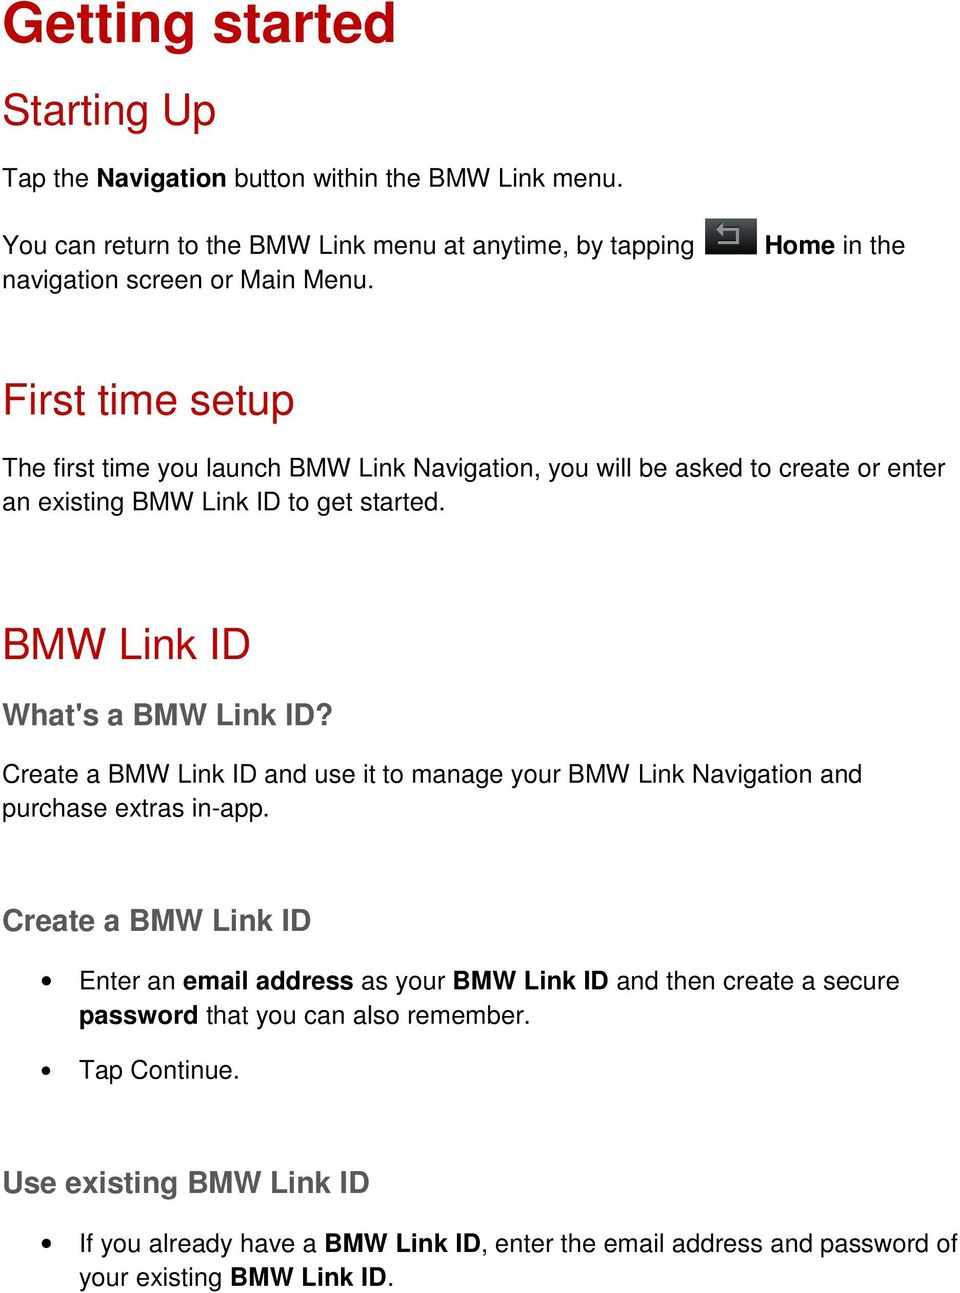 BMW Link ID What's a BMW Link ID? Create a BMW Link ID and use it to manage your BMW Link Navigation and purchase extras in-app.